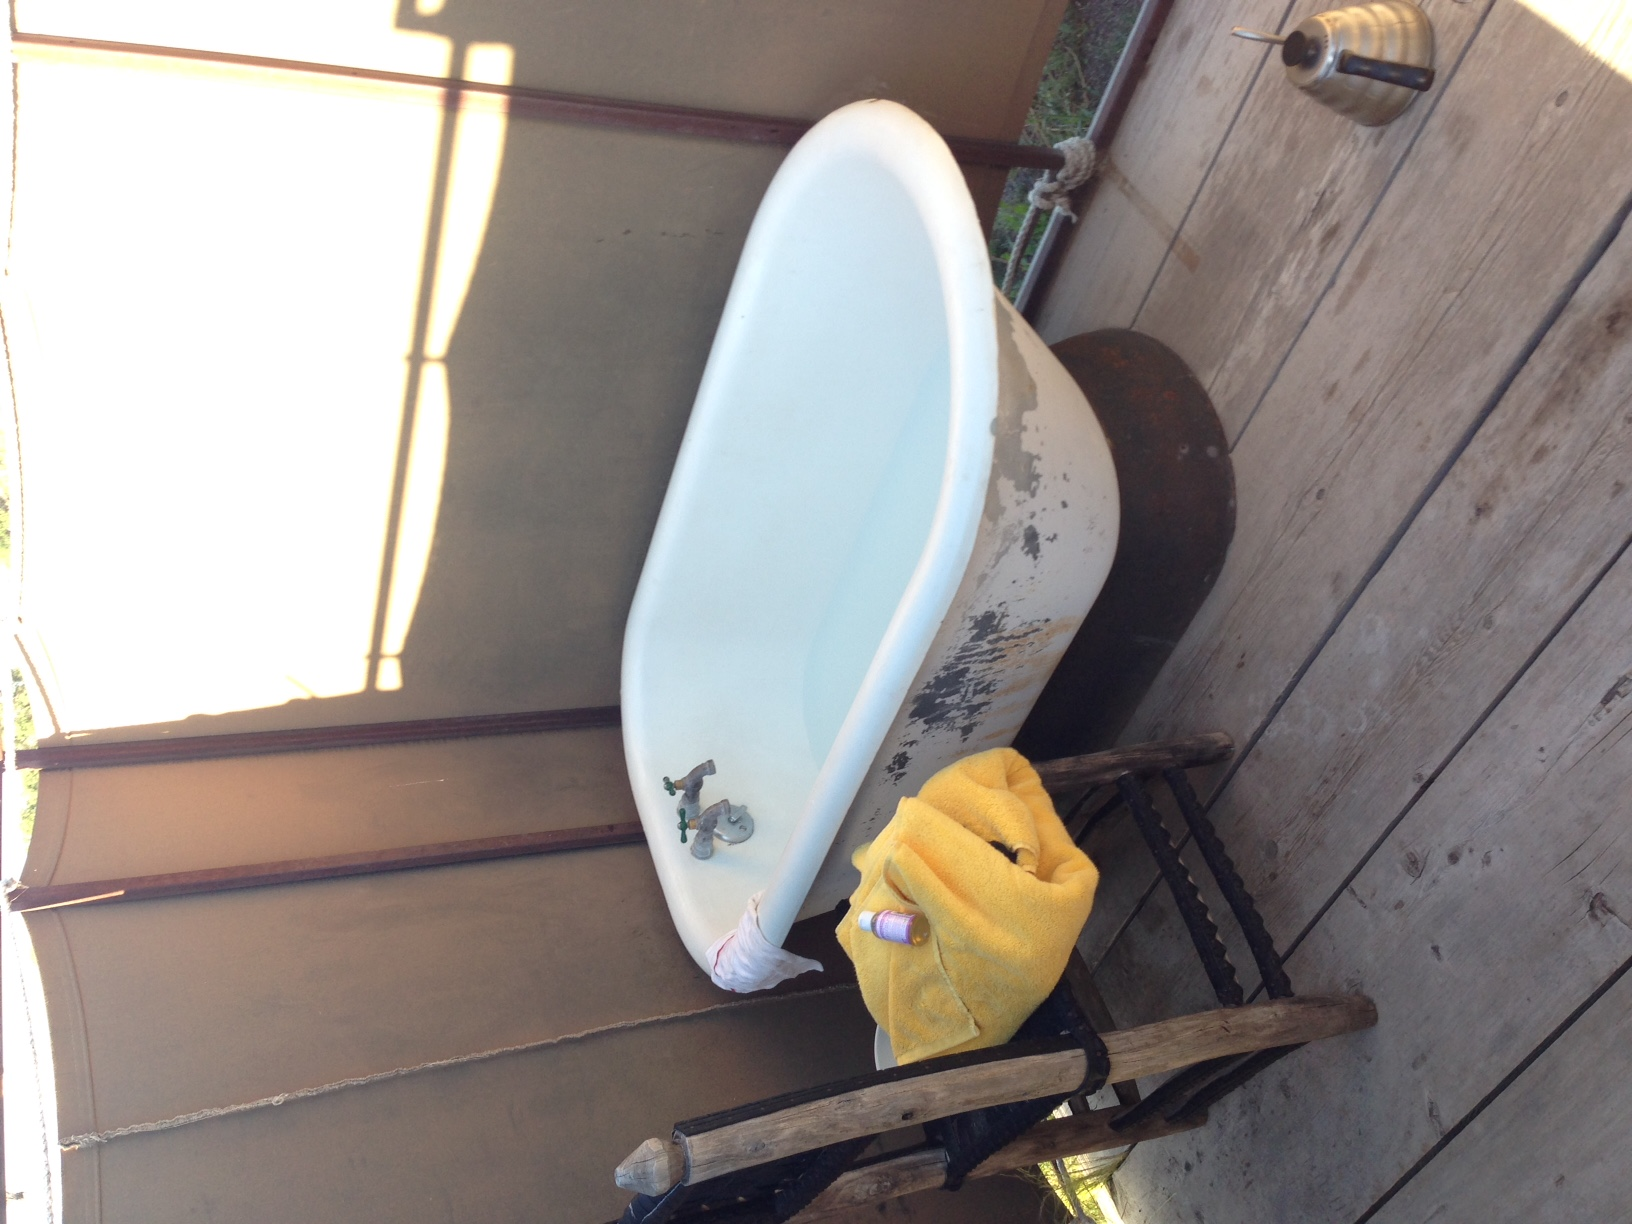 The outdoor tub for the Branstrator trailer at El Cosmico.